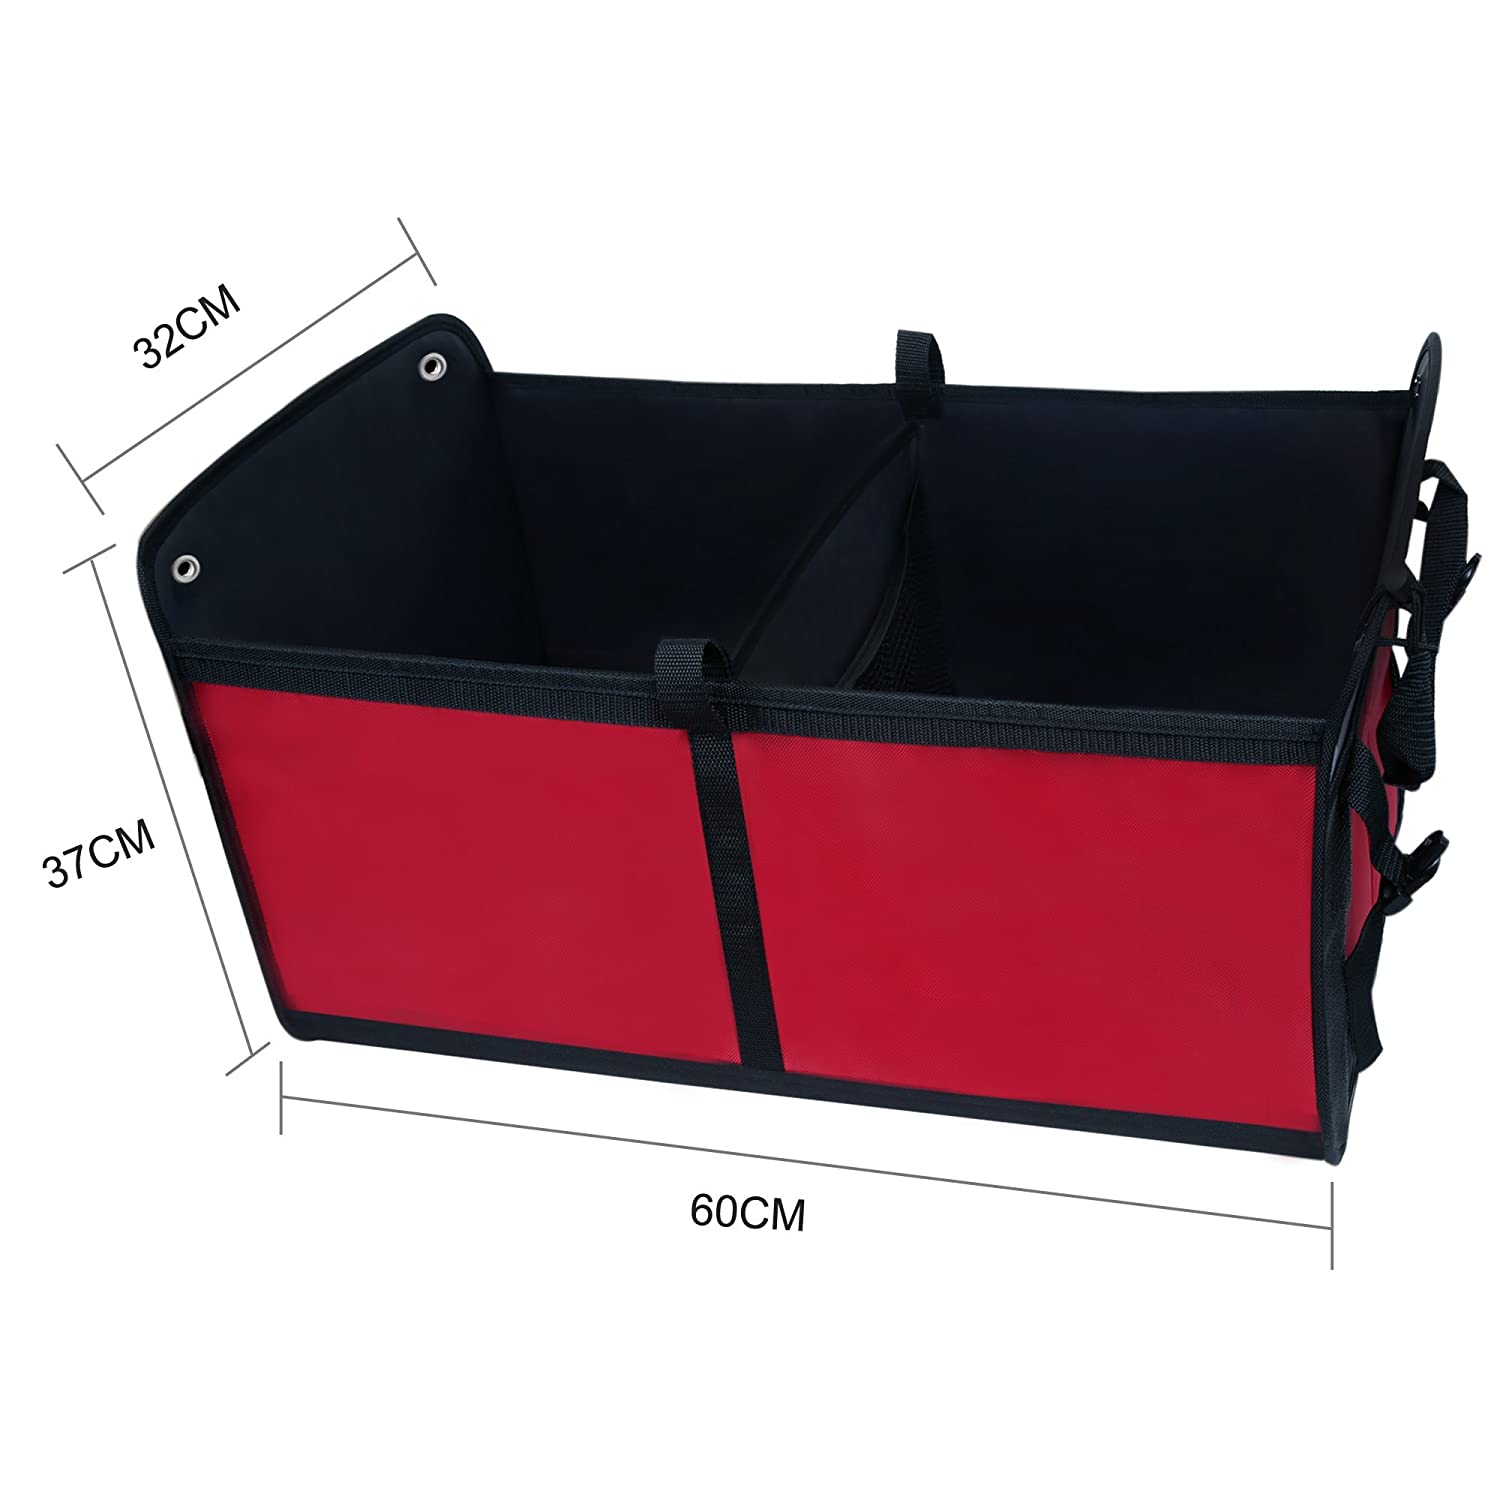 Minivan and Truck SUV Wonderoto Trunk Cargo Organizer Car Storage Container Foldable and Flexible 2 Compartments for Cars Color Red and Black 5559022234